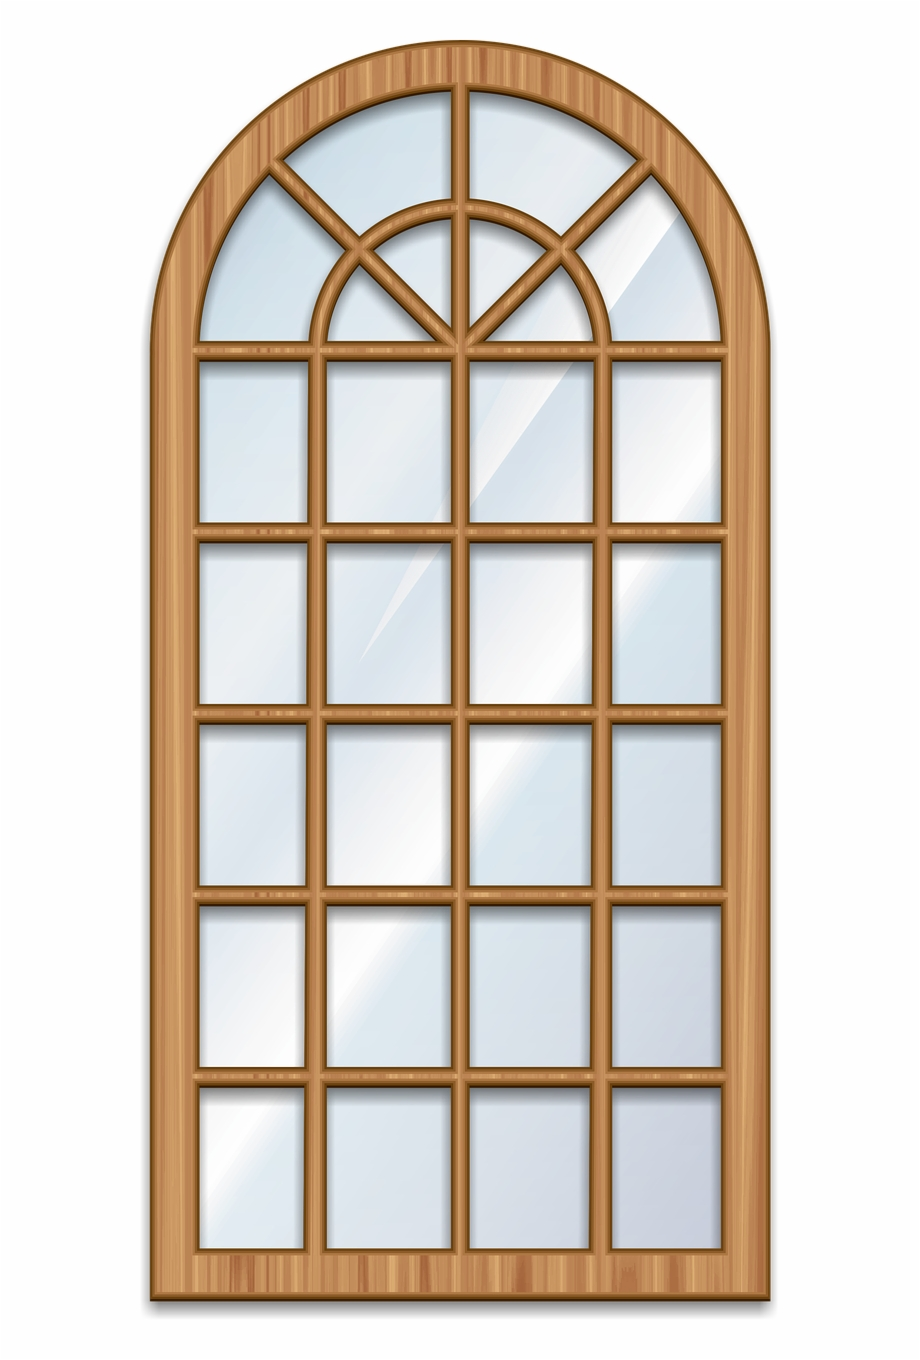 Marco de madera clipart picture free stock Window Wood Pane Architecture Png Image - Marco De Ventanas ... picture free stock